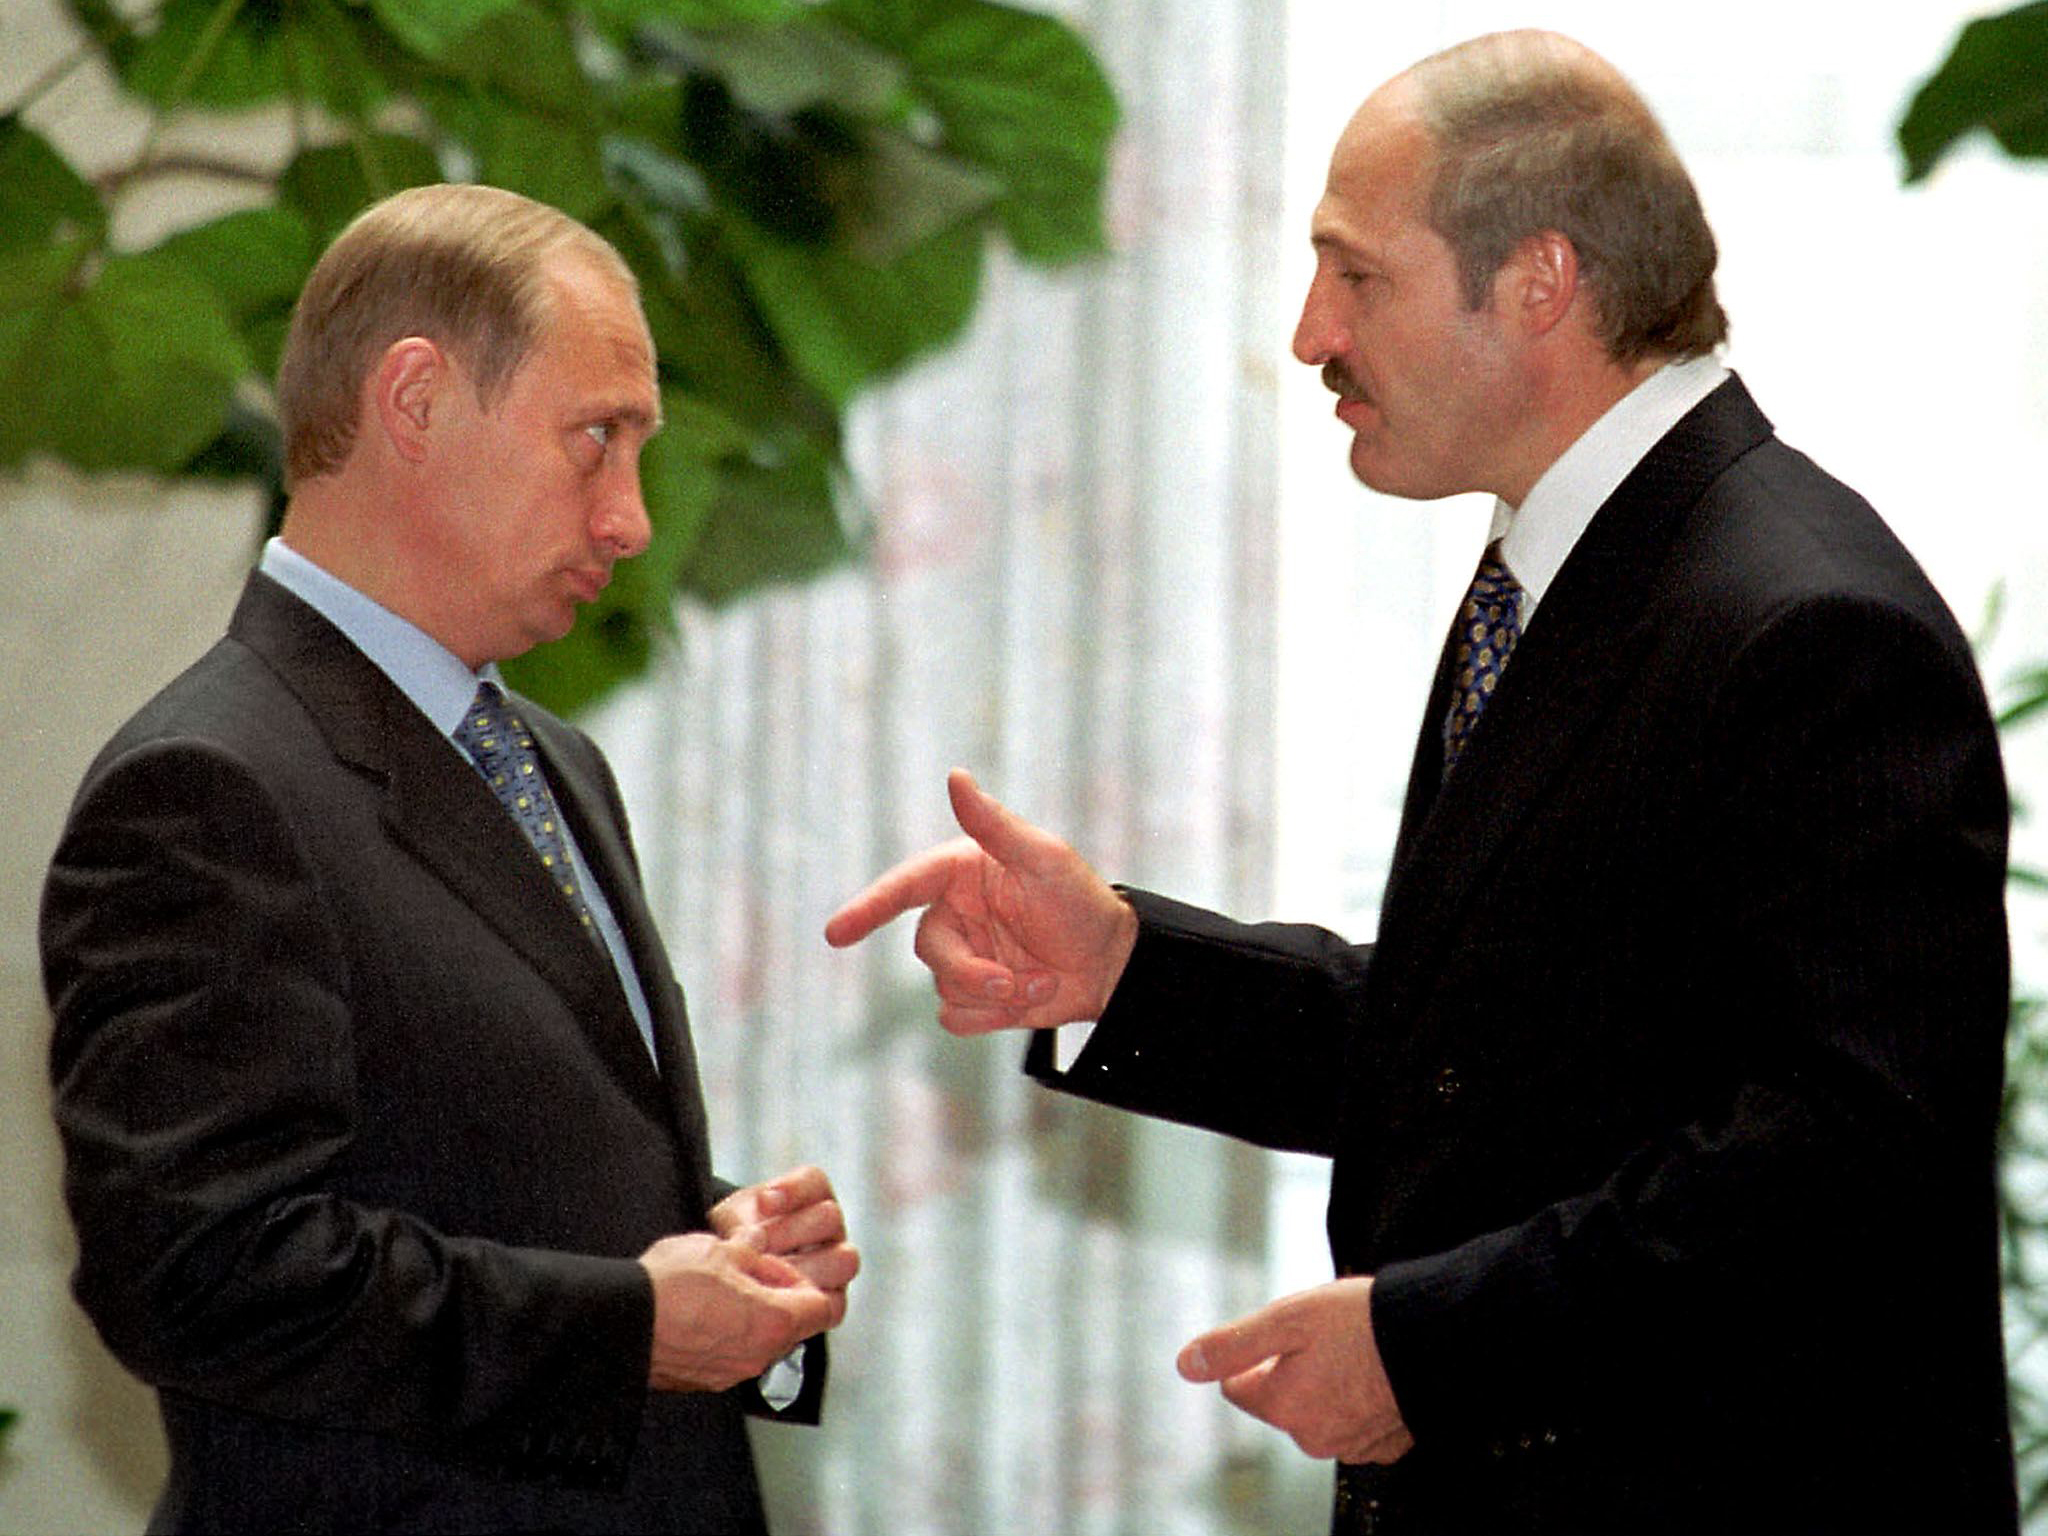 """Lukashenko (right) talks with Russian President Vladimir Putin during their meeting in Moscow's Kremlin on June 27, 2000. <span class=""""attribution"""">STF/AFP via Getty Images</span>"""